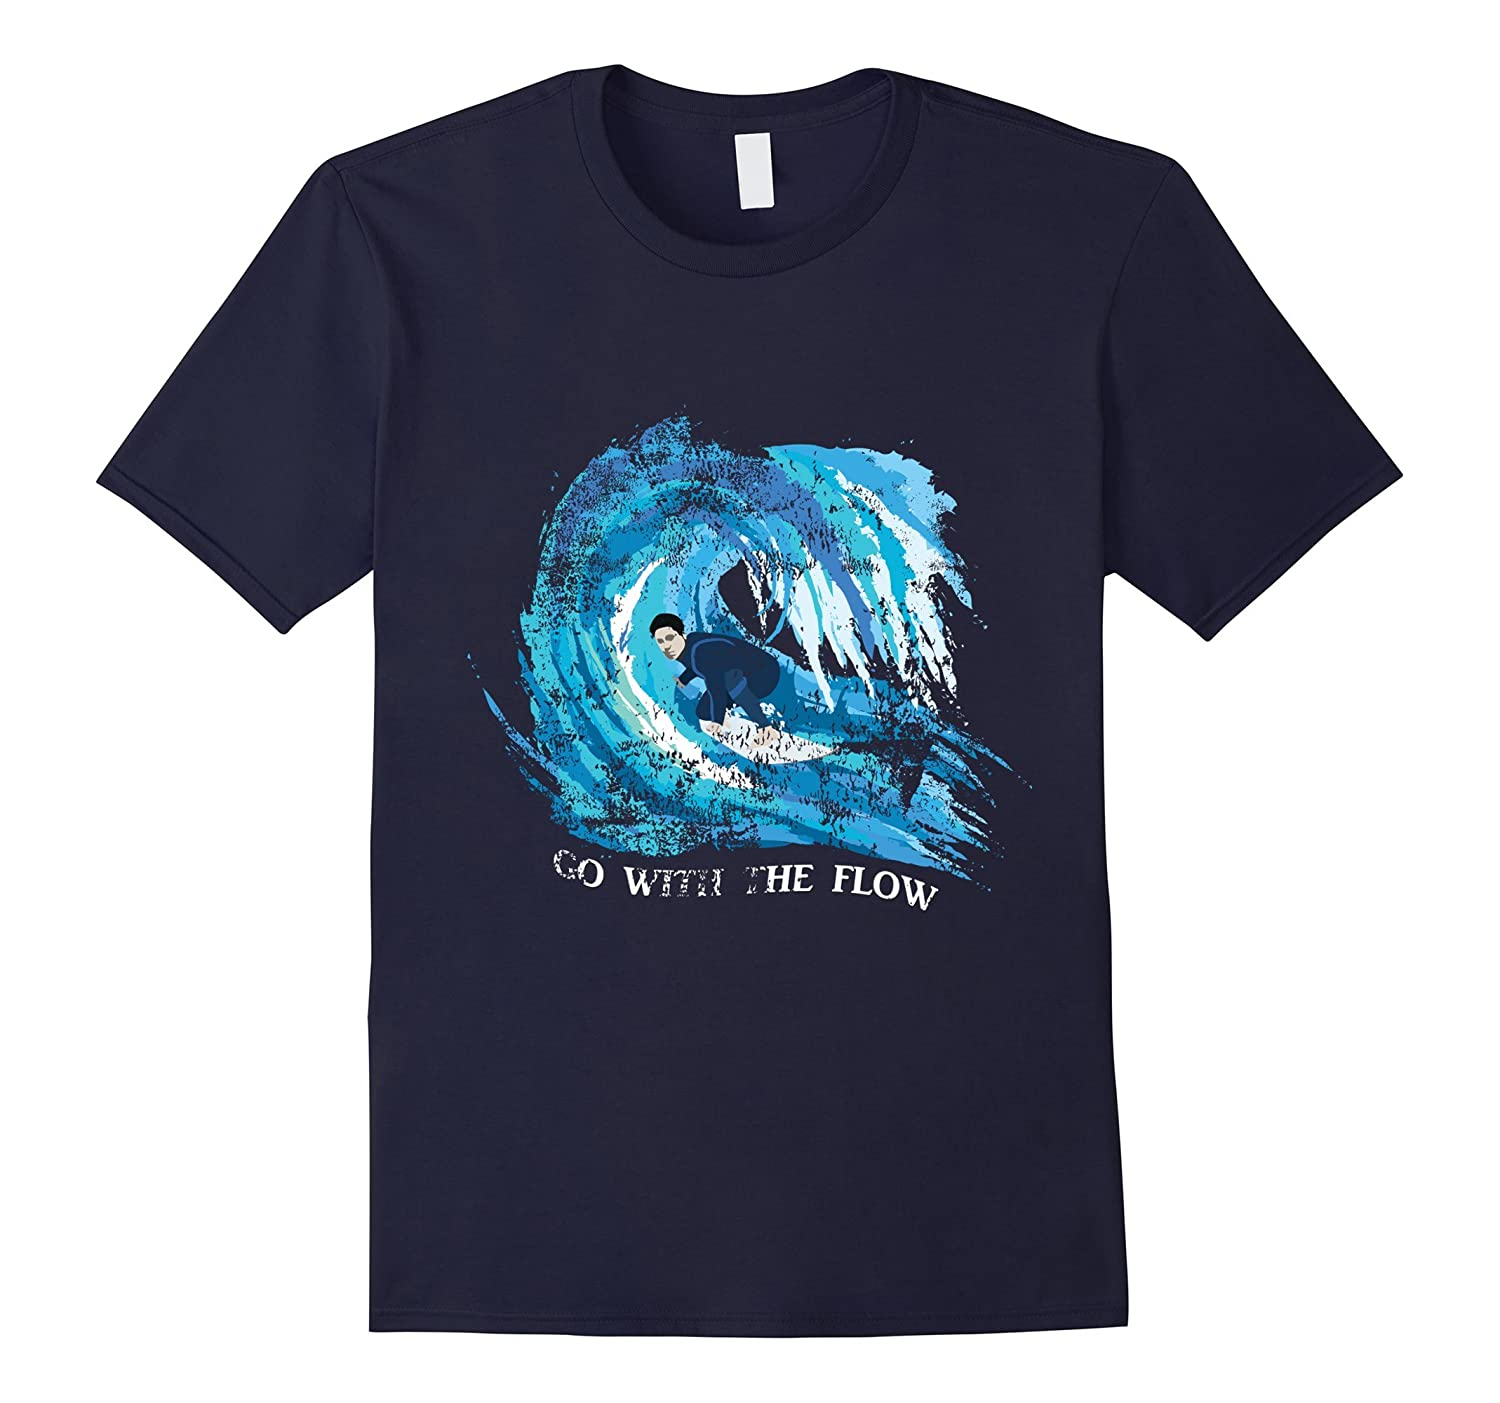 Surf T-Shirts Go With The Flow Distressed The Surfer's Way-FL